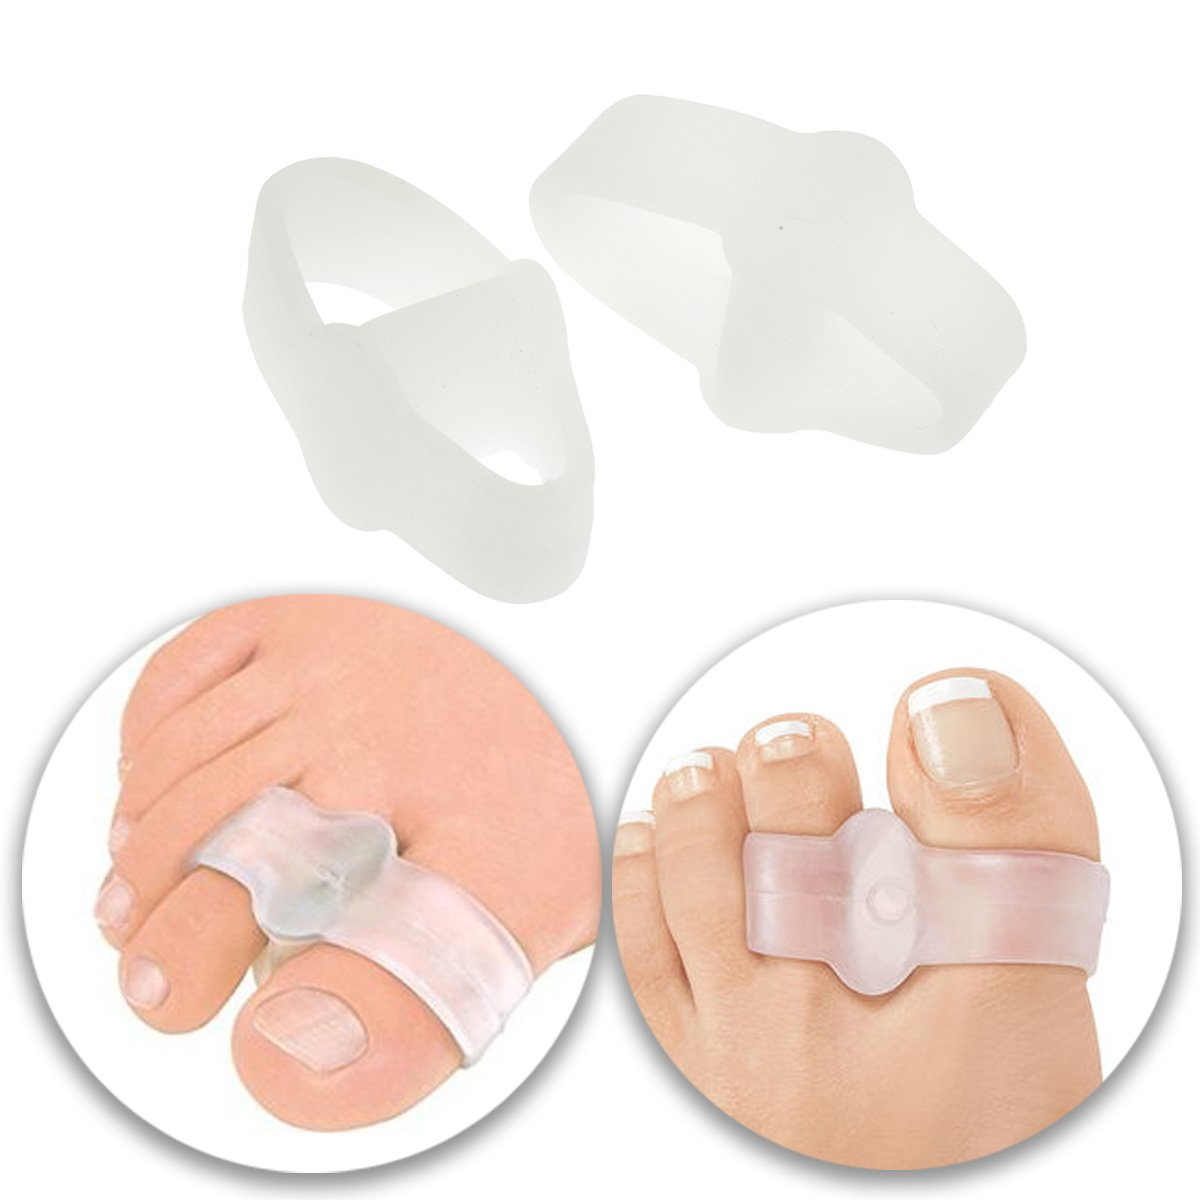 Foot Care Set Kit Lot of 2pcs Double Loops Silicone Gel Toes Separators Spacers Feet Stretchers Straighteners Bunions Correctors Correction Pads Cushions for Pain Relief and Tension Relieving Relaxing